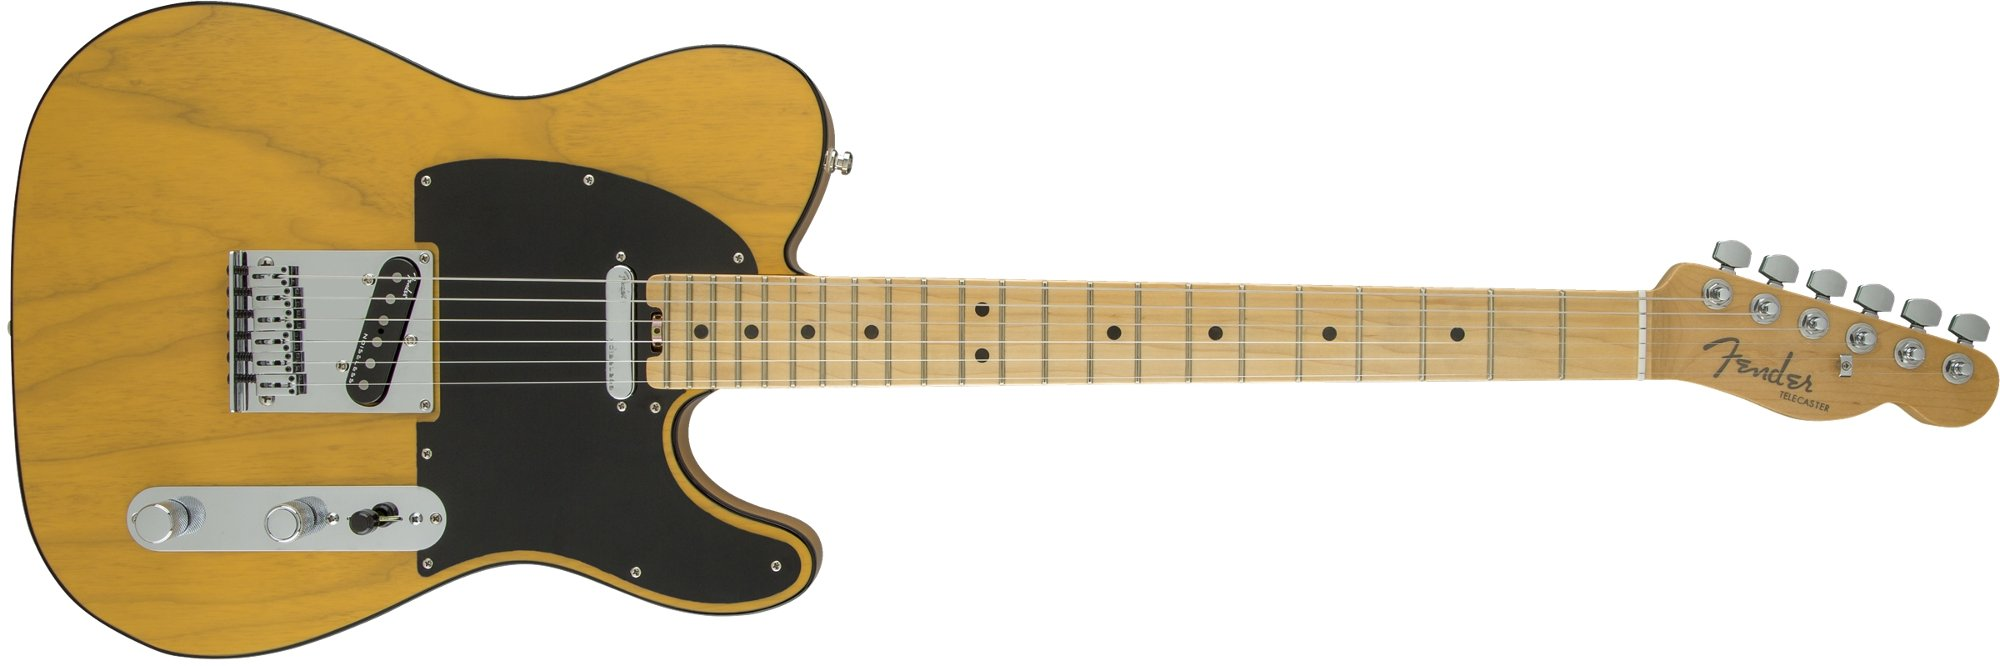 Single Cutaway SS Electric Guitar in Butterscotch Blonde Finish with Ash Body and Maple Fingerboard